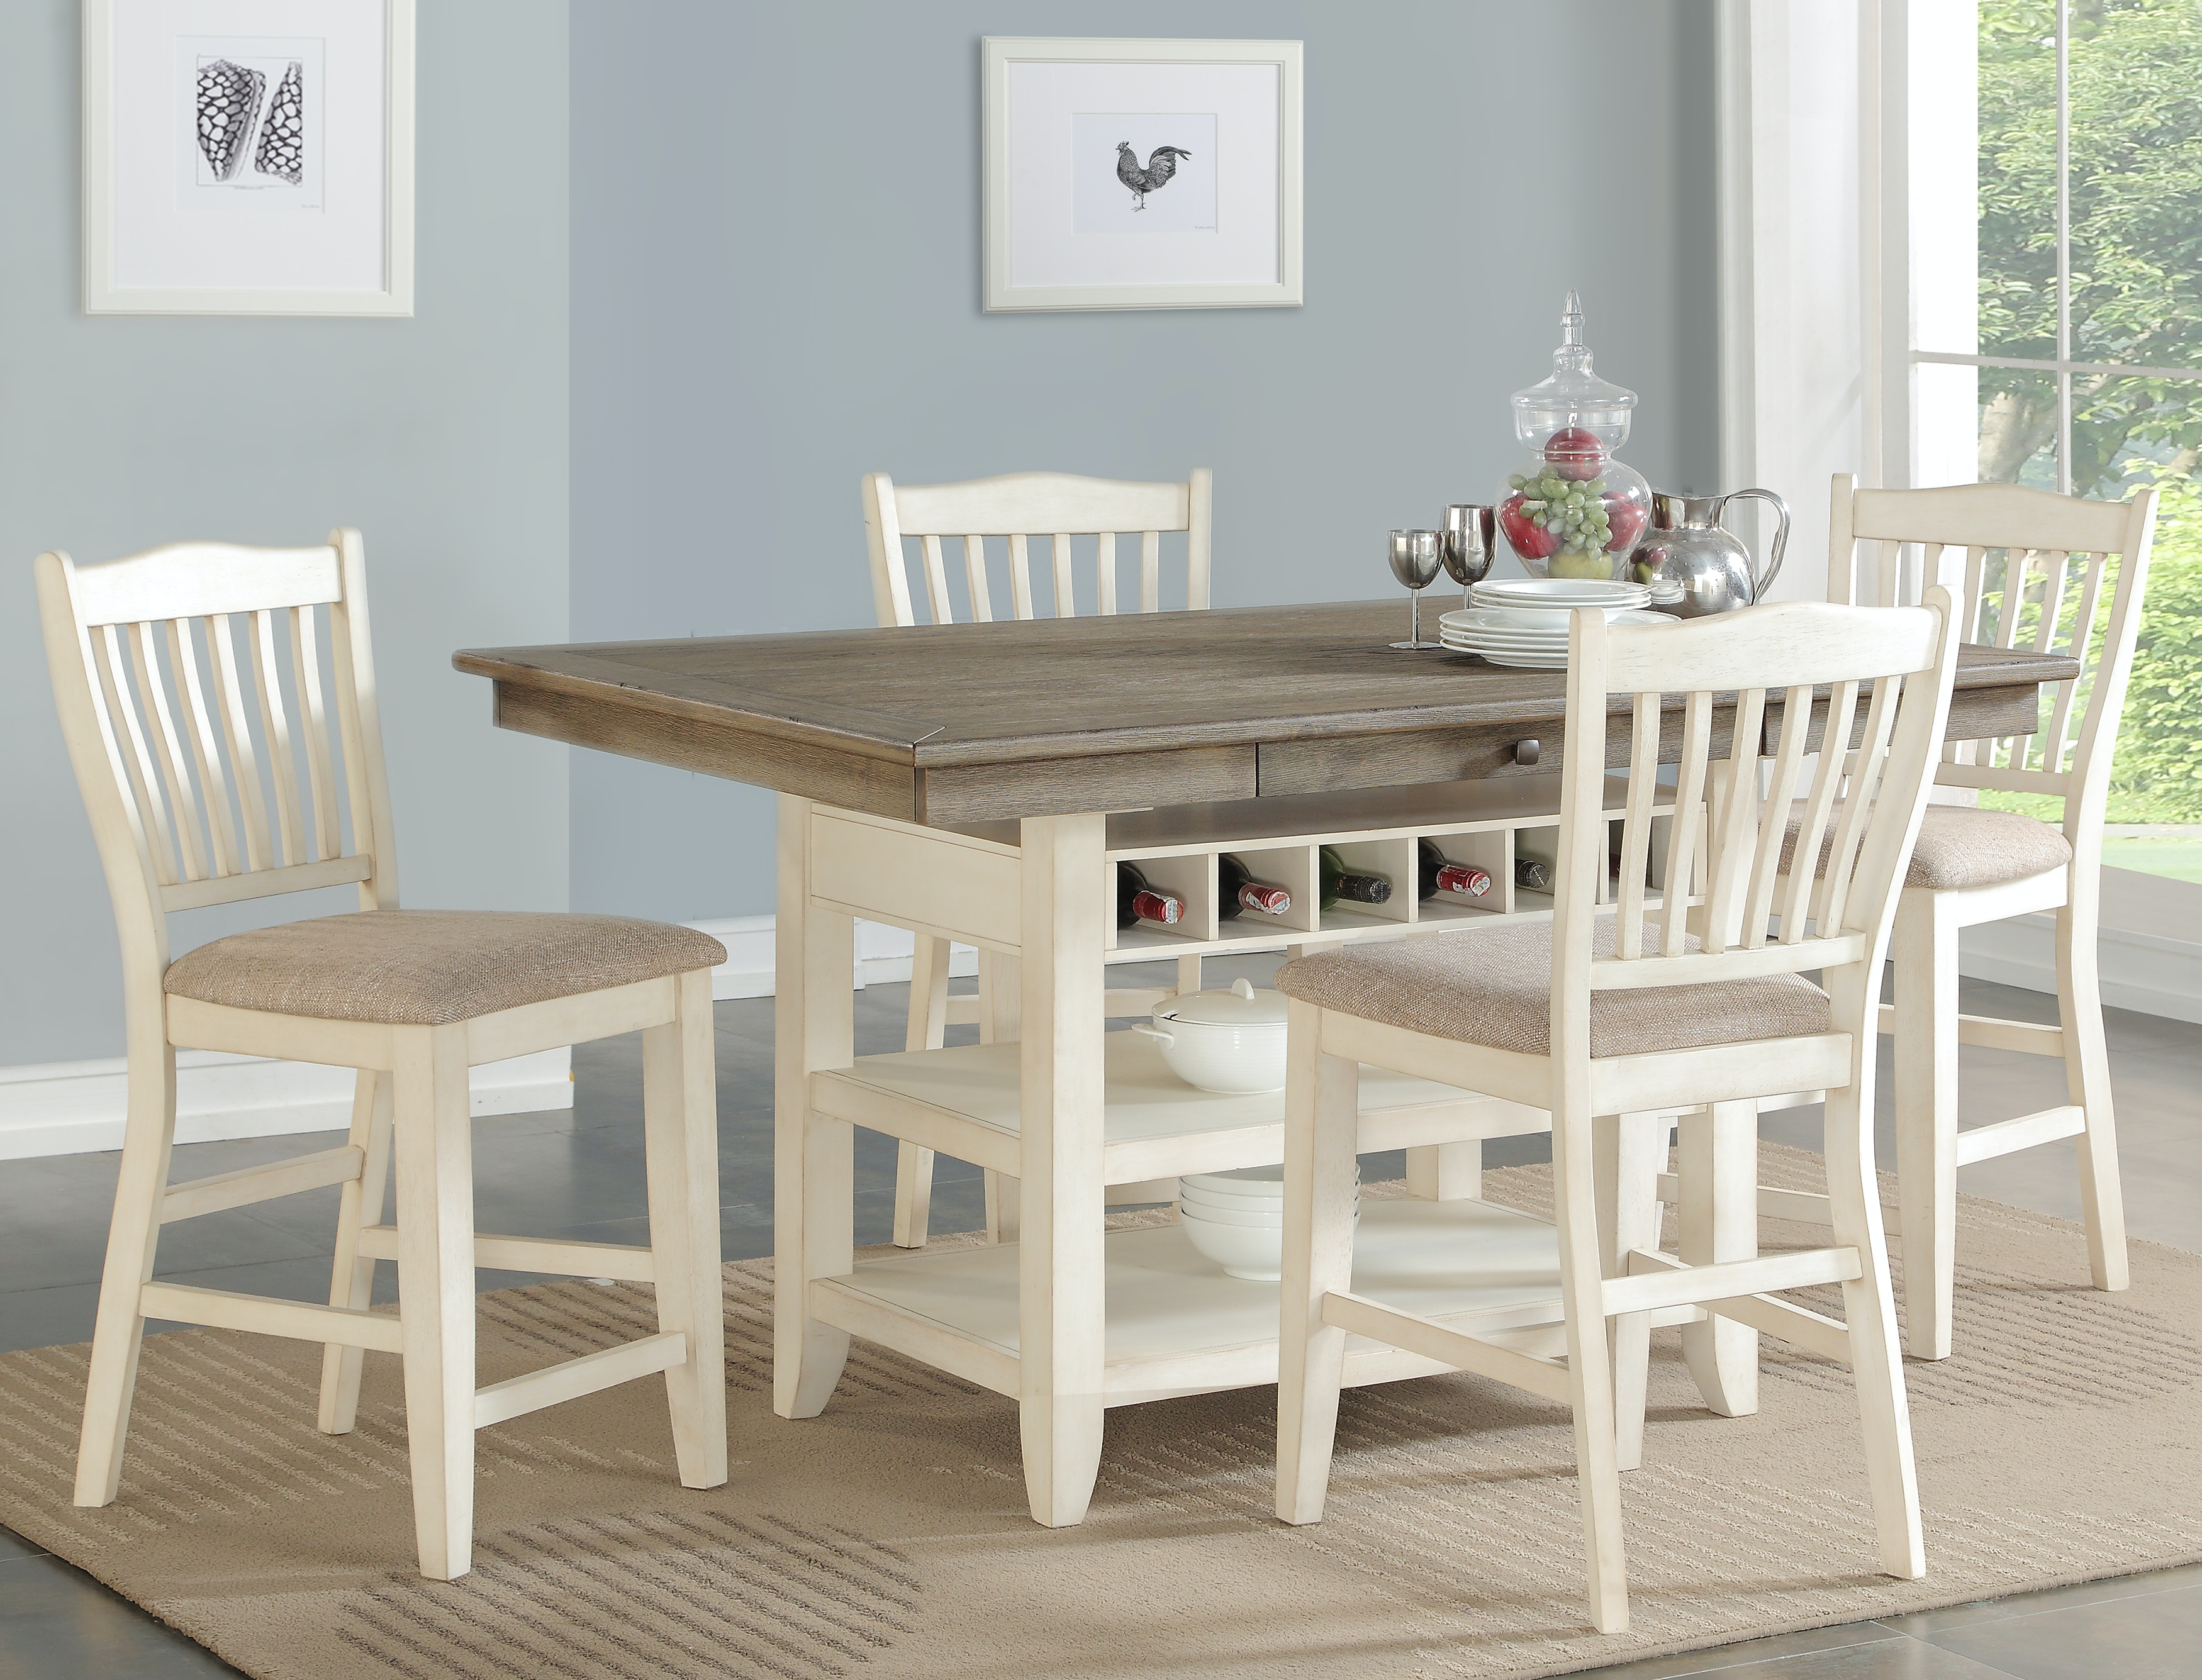 Garth 5 Piece White Counter Height Dining Set GP:D575